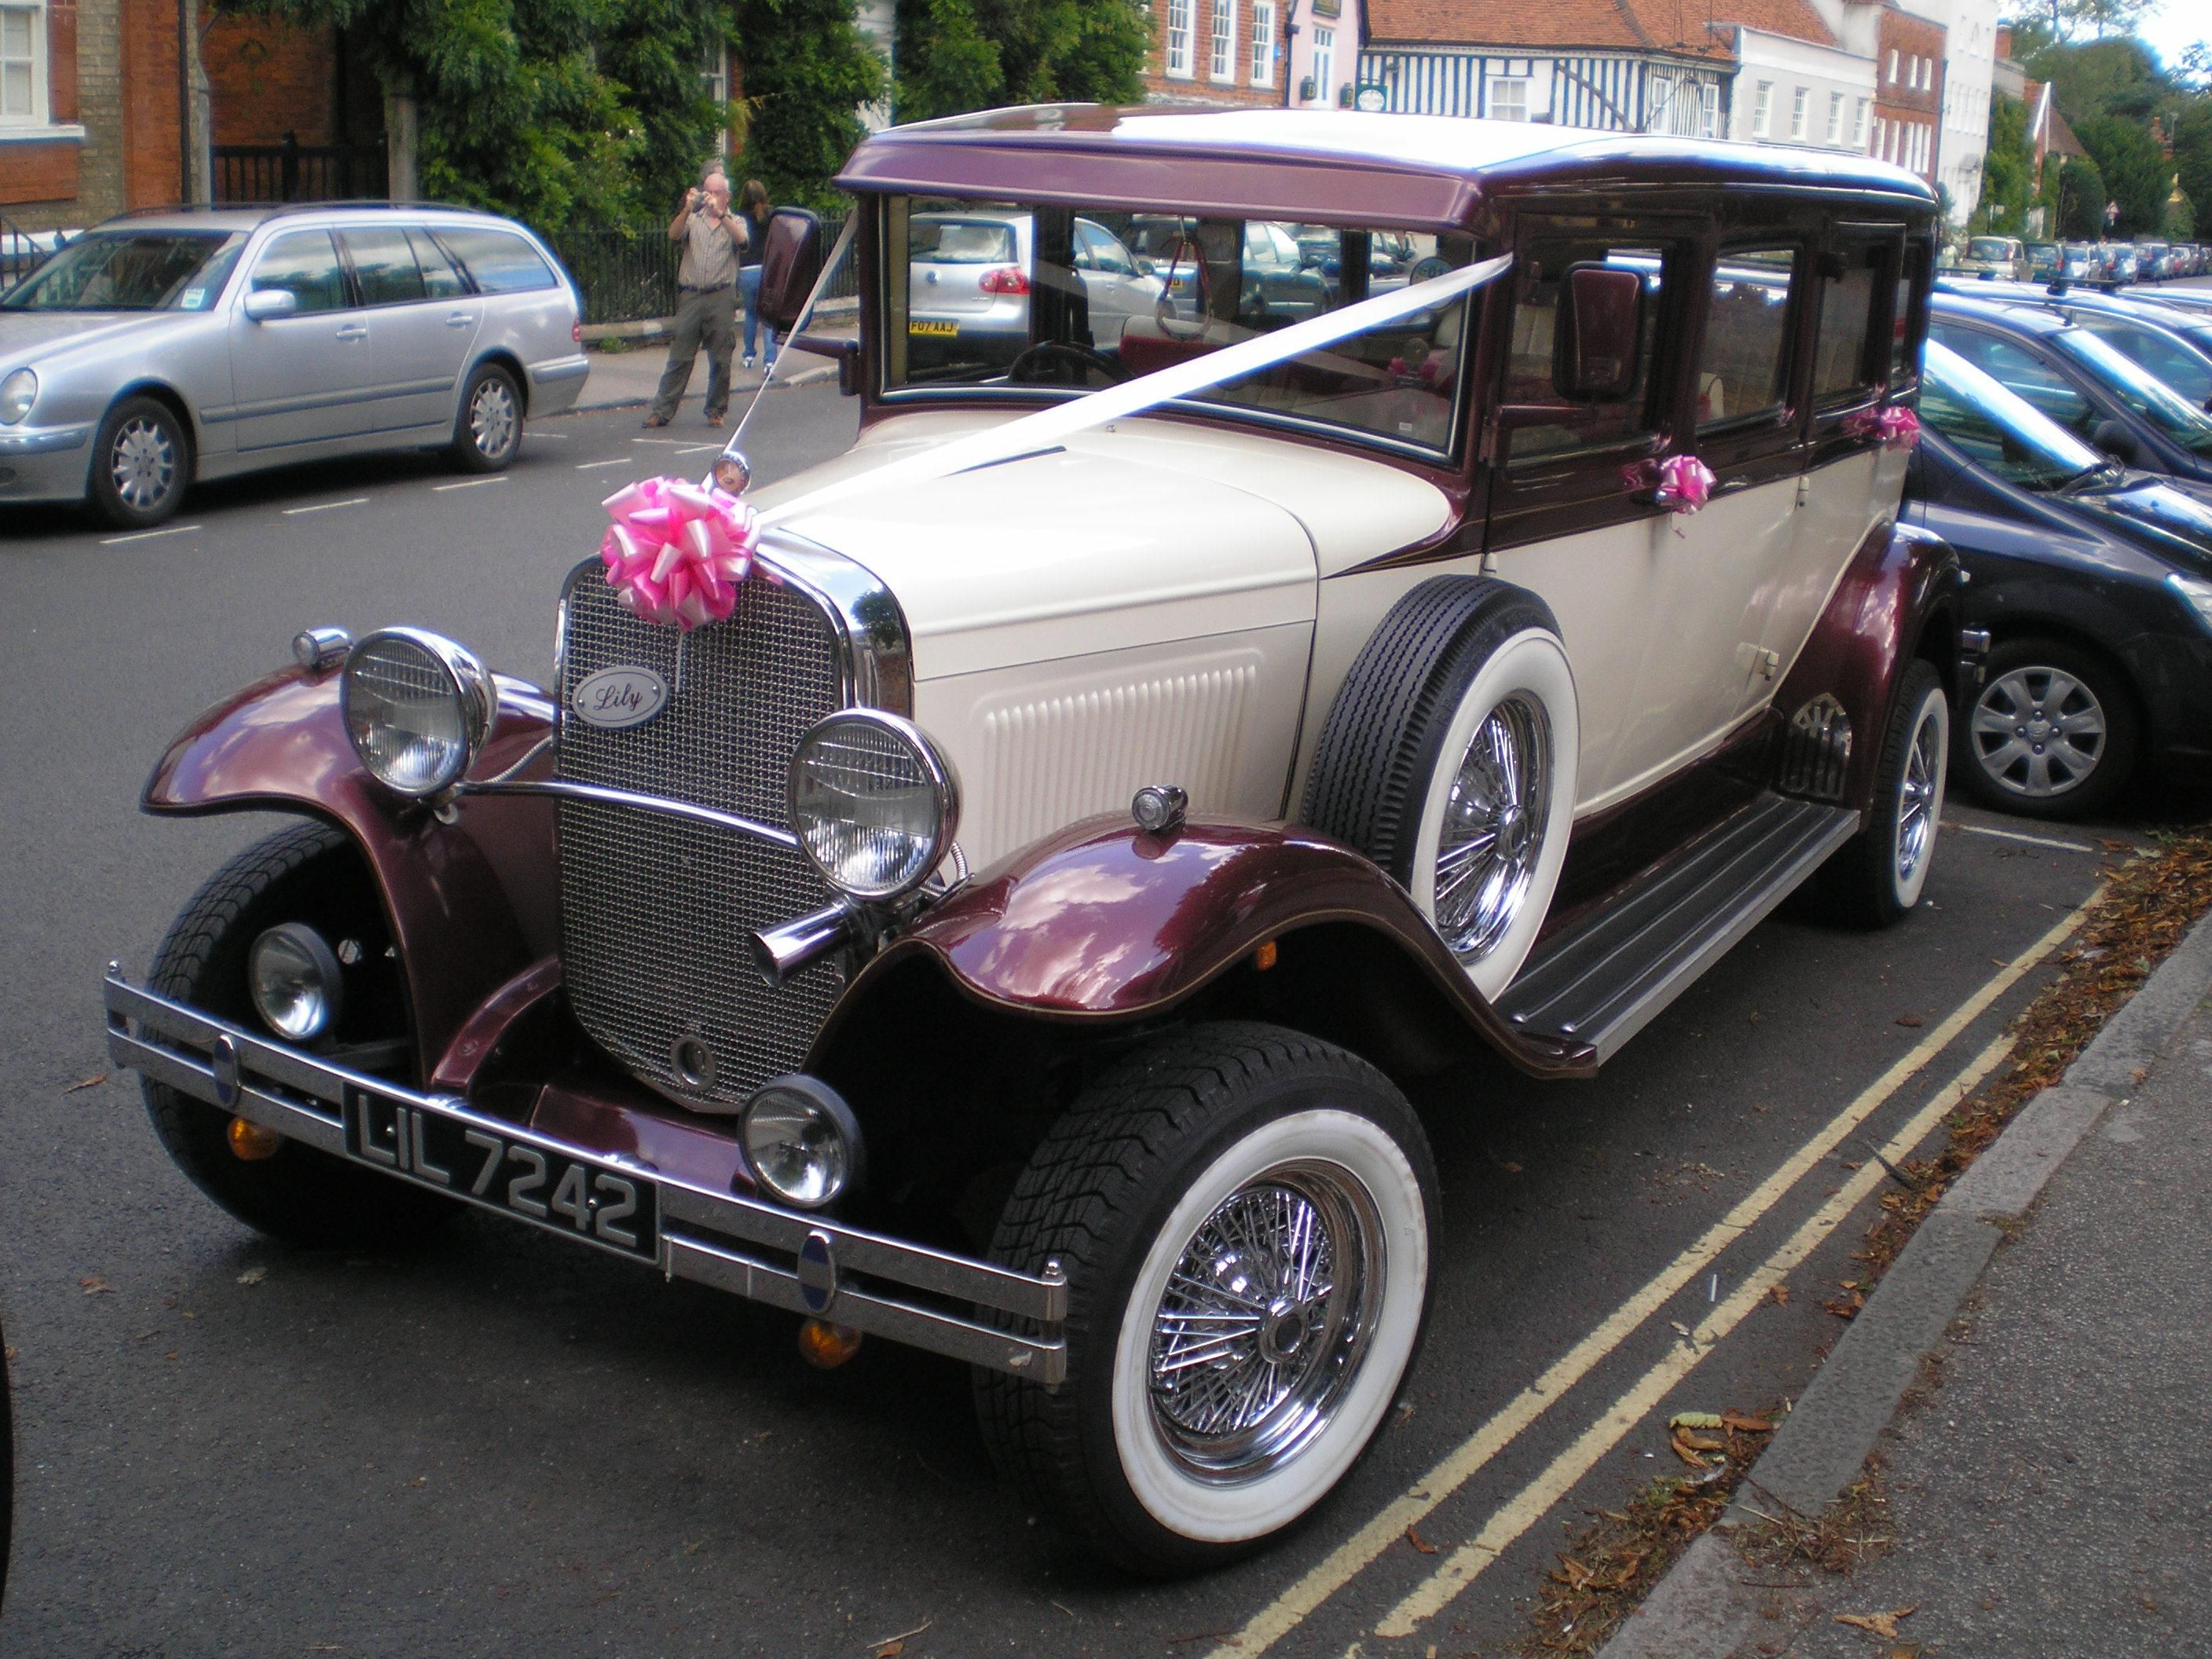 FileWedding car oldtimerjpg  Wikimedia Commons